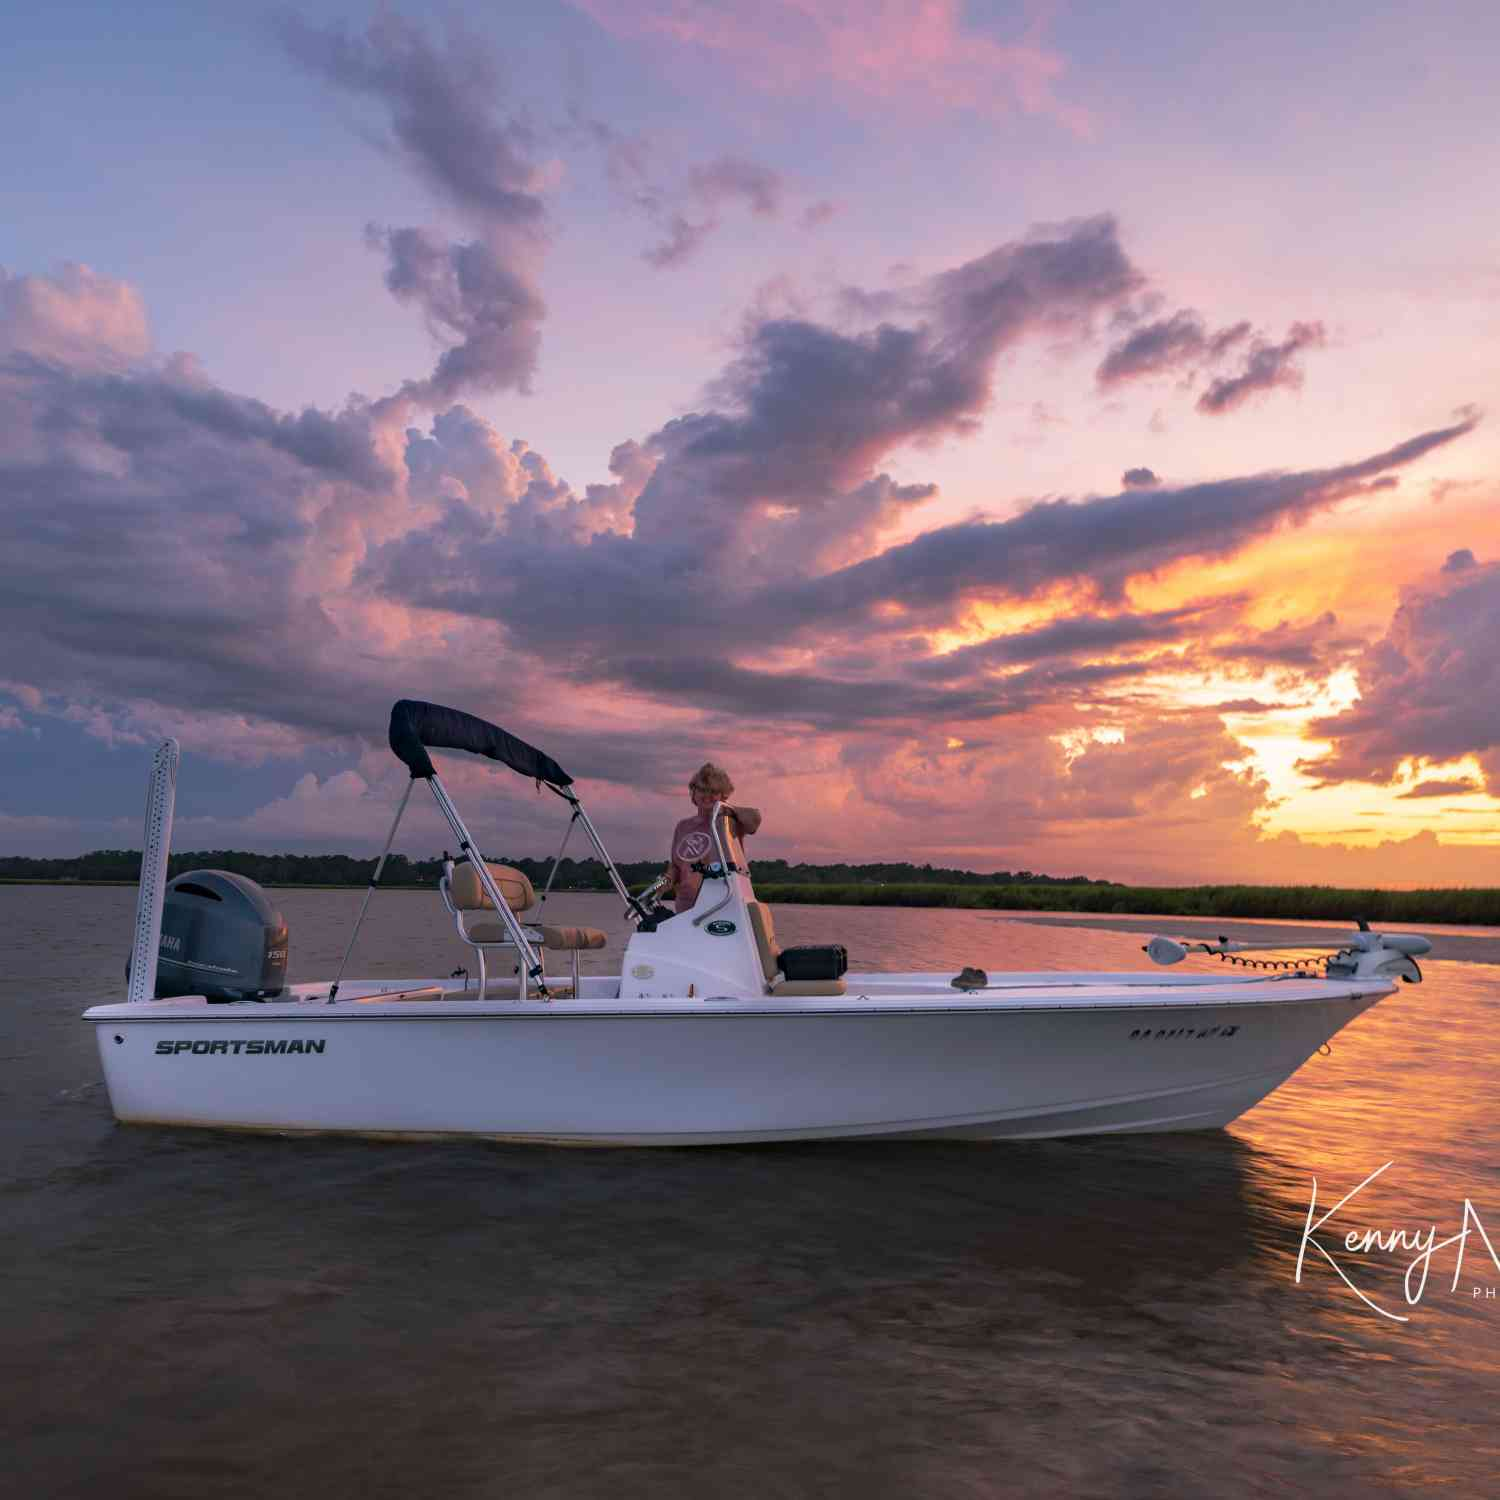 Title: Sportsman Sunset - On board their Sportsman Masters 207 Bay Boat - Location: Darien, Georgia. Participating in the Photo Contest #SportsmanAugust2019